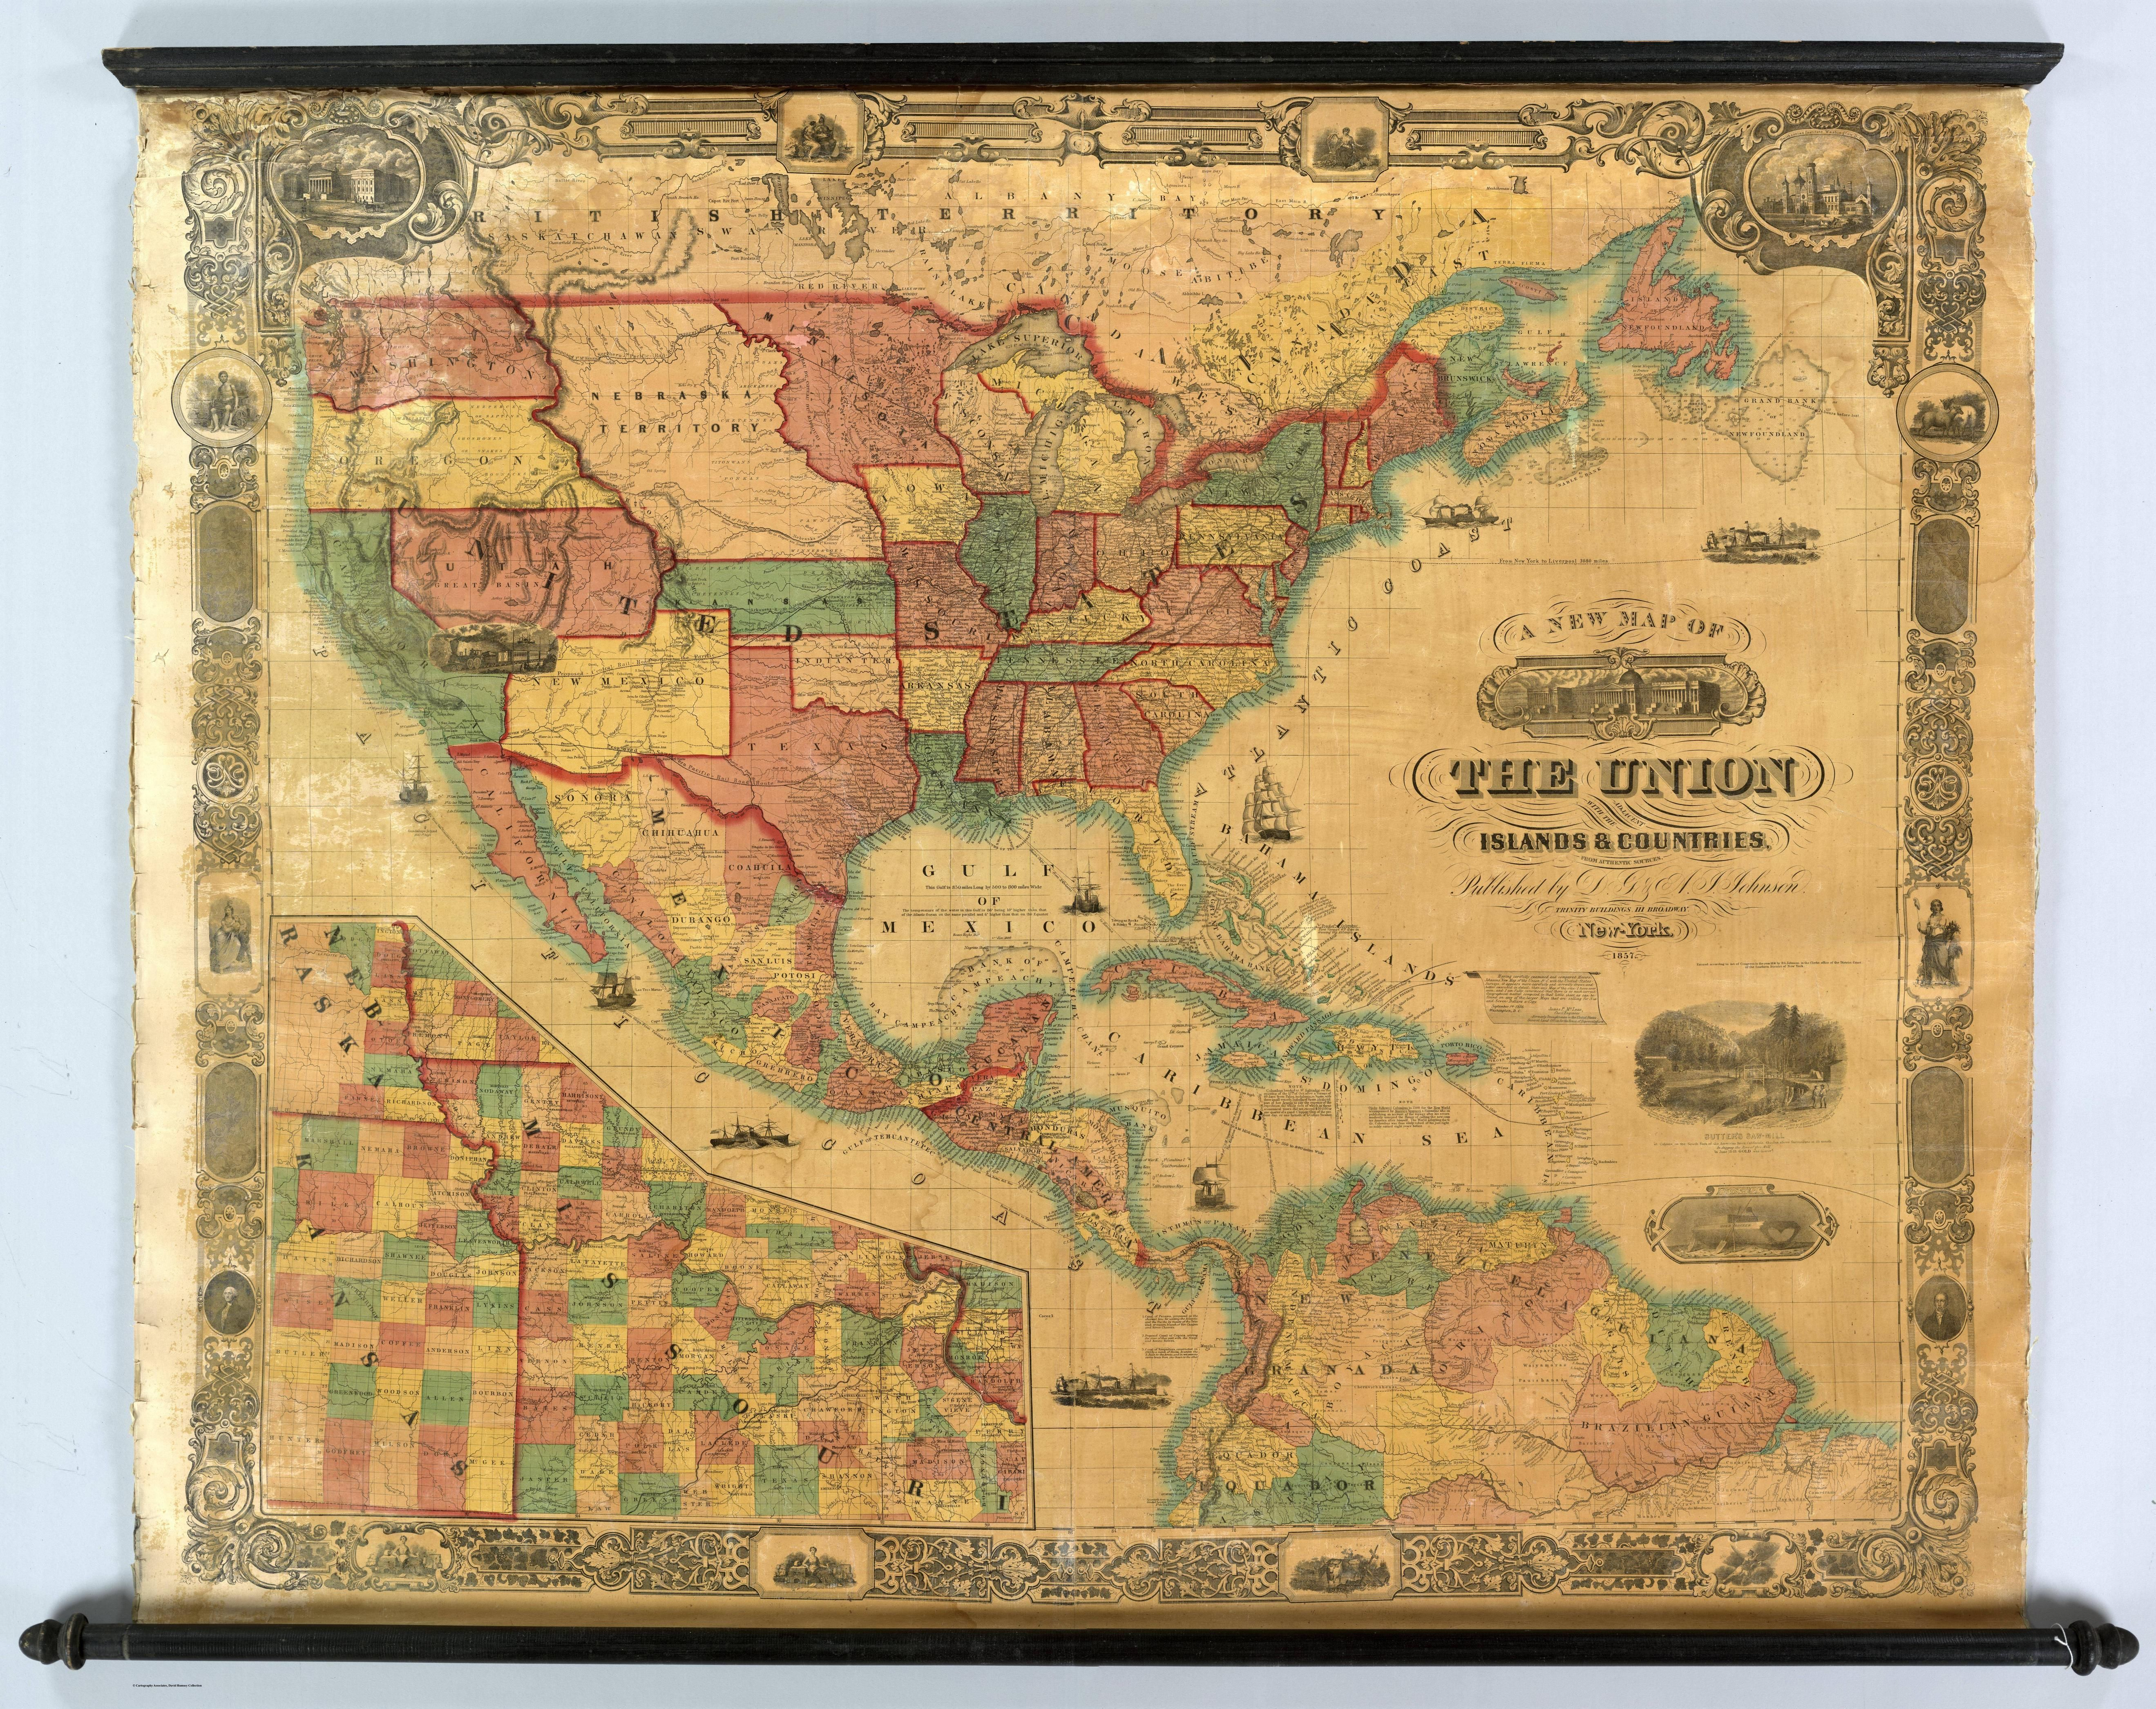 1857 map of the United States Mexico